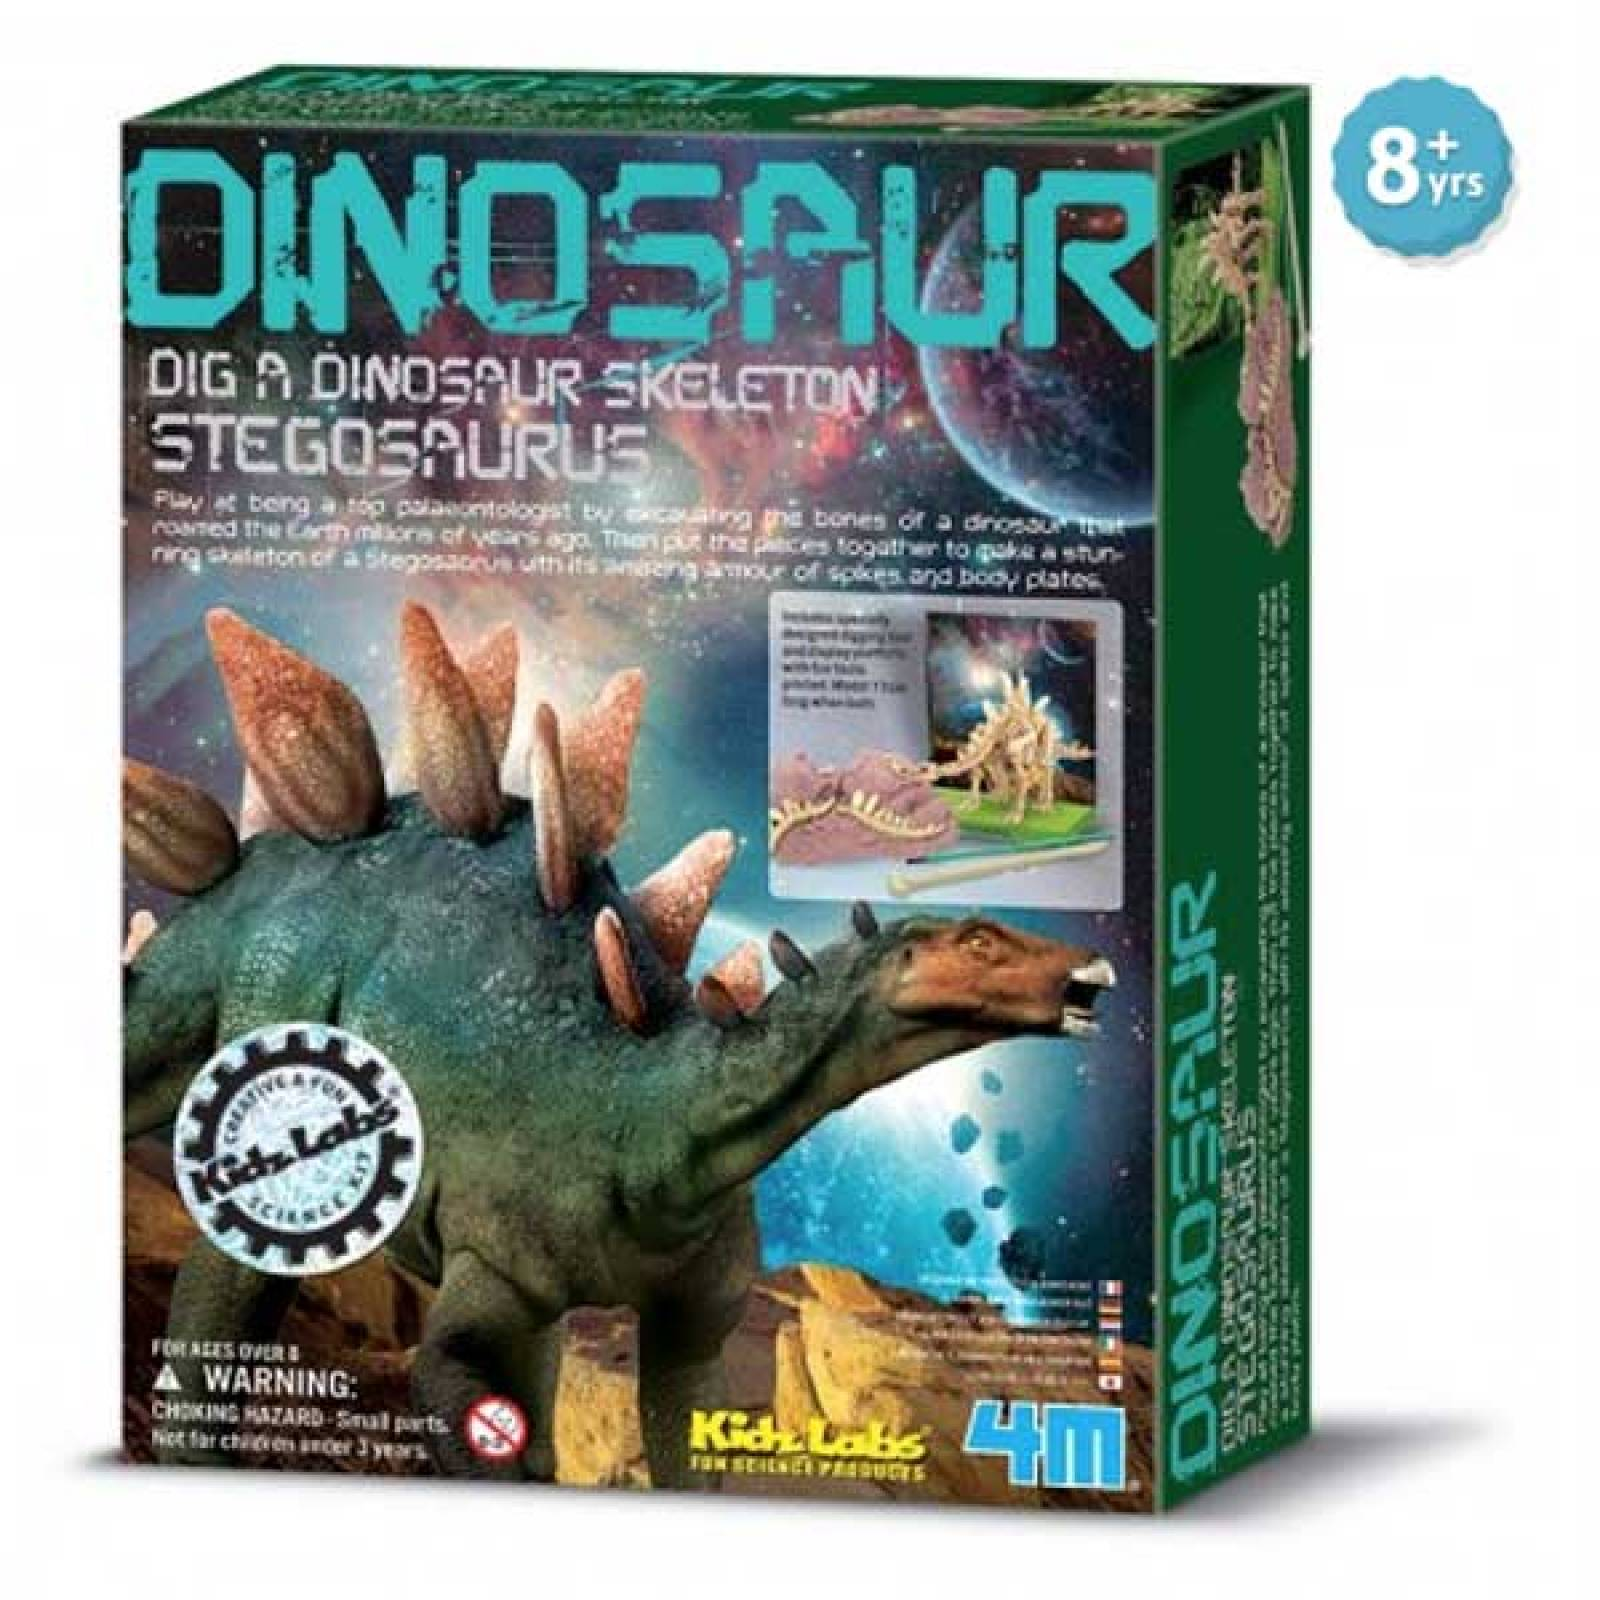 Dig A Stegosaurus Skeleton Kit - Kidz Labs 8+